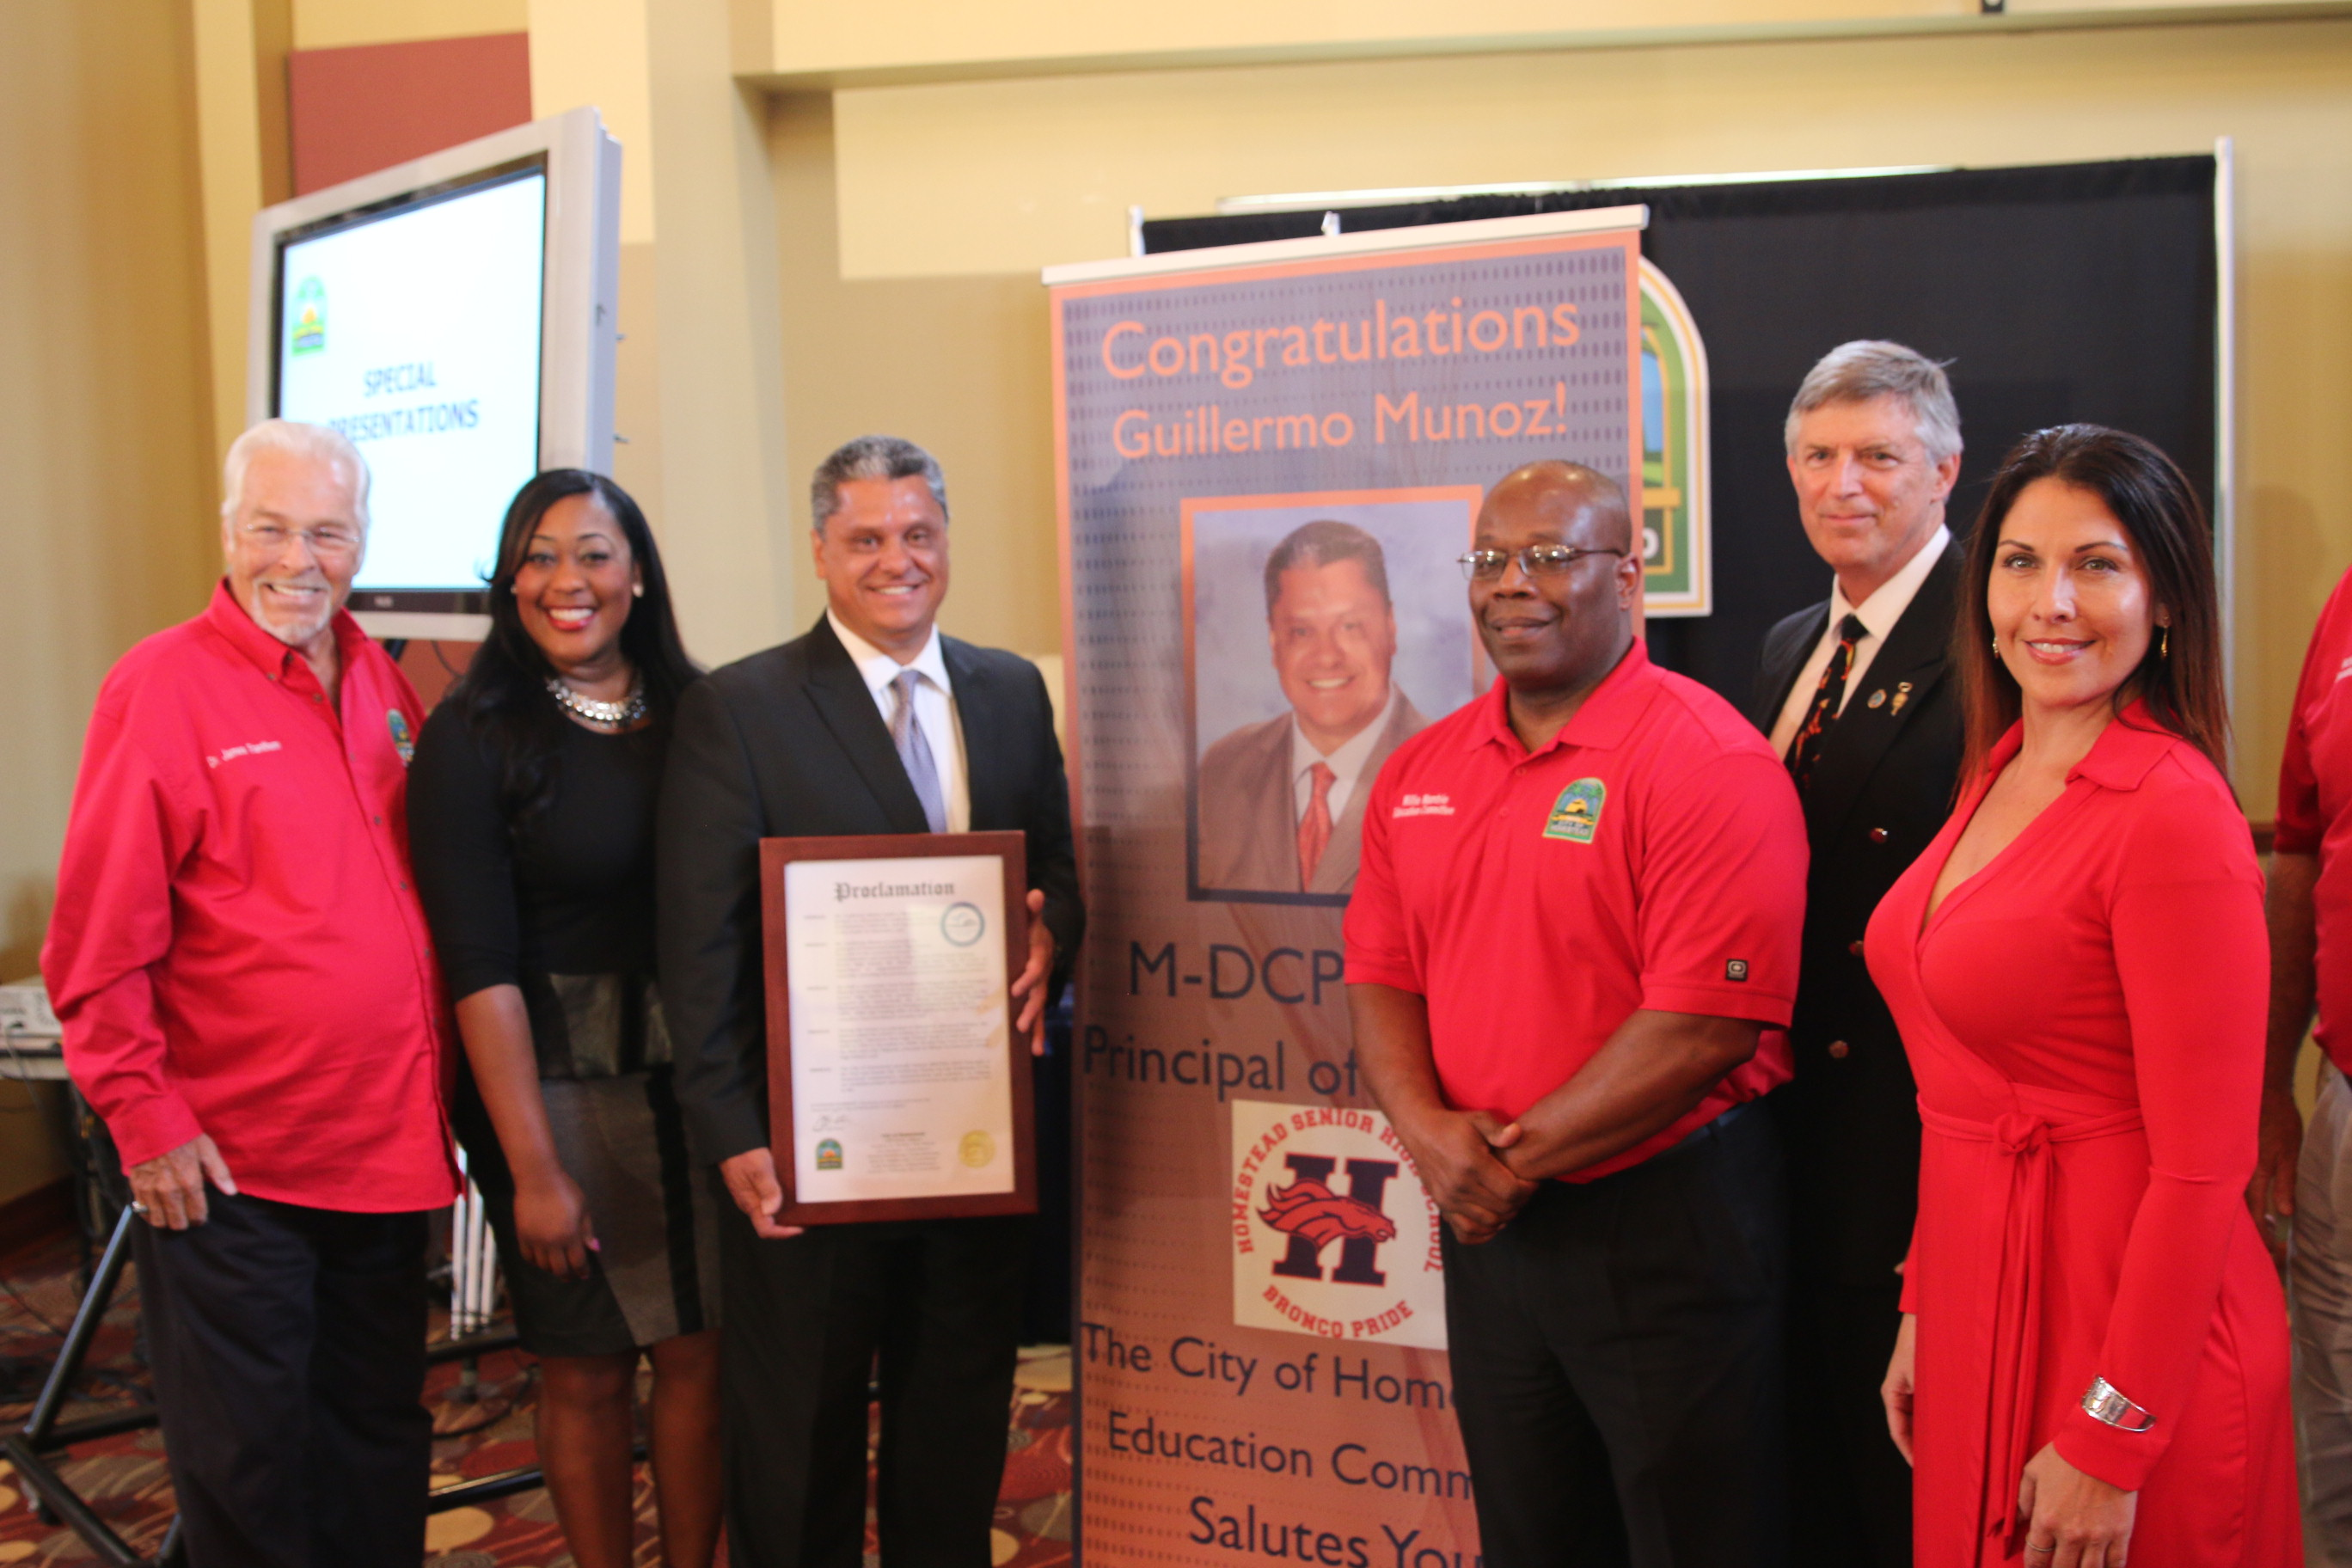 Councilwoman Fairclough Honors Homestead Principals